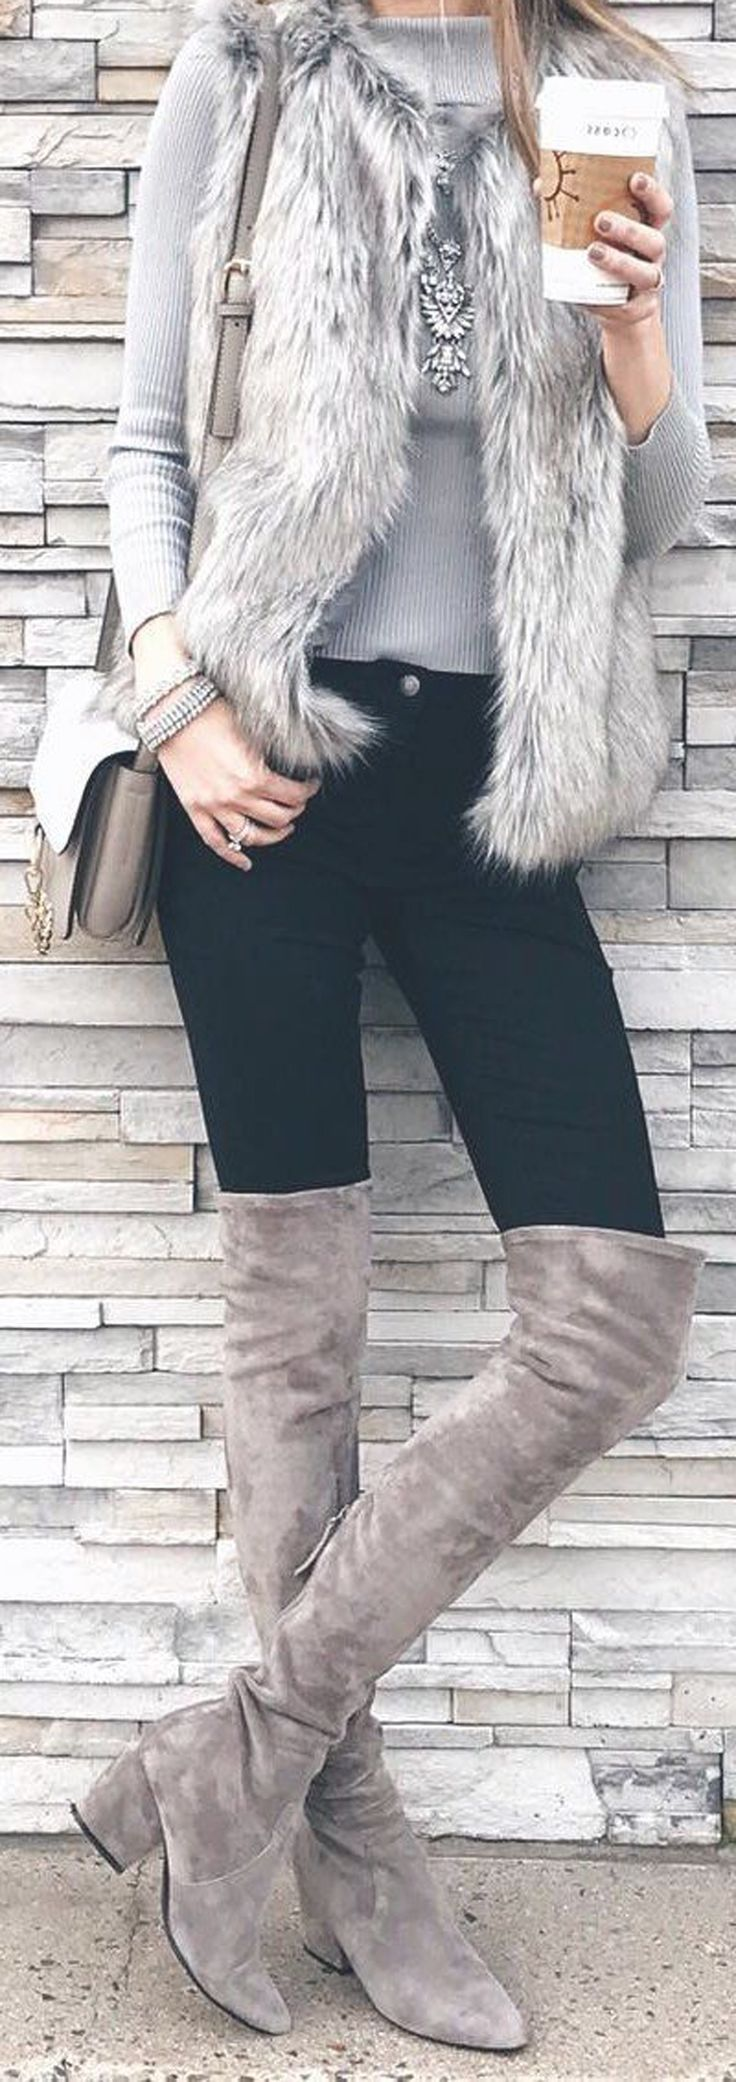 Casual Preppy Winter Outfit Ideas for Women Dressy Stylish Fur Vest with Leggings Thigh High Grey Suede Boots - www.Poshiroo.com